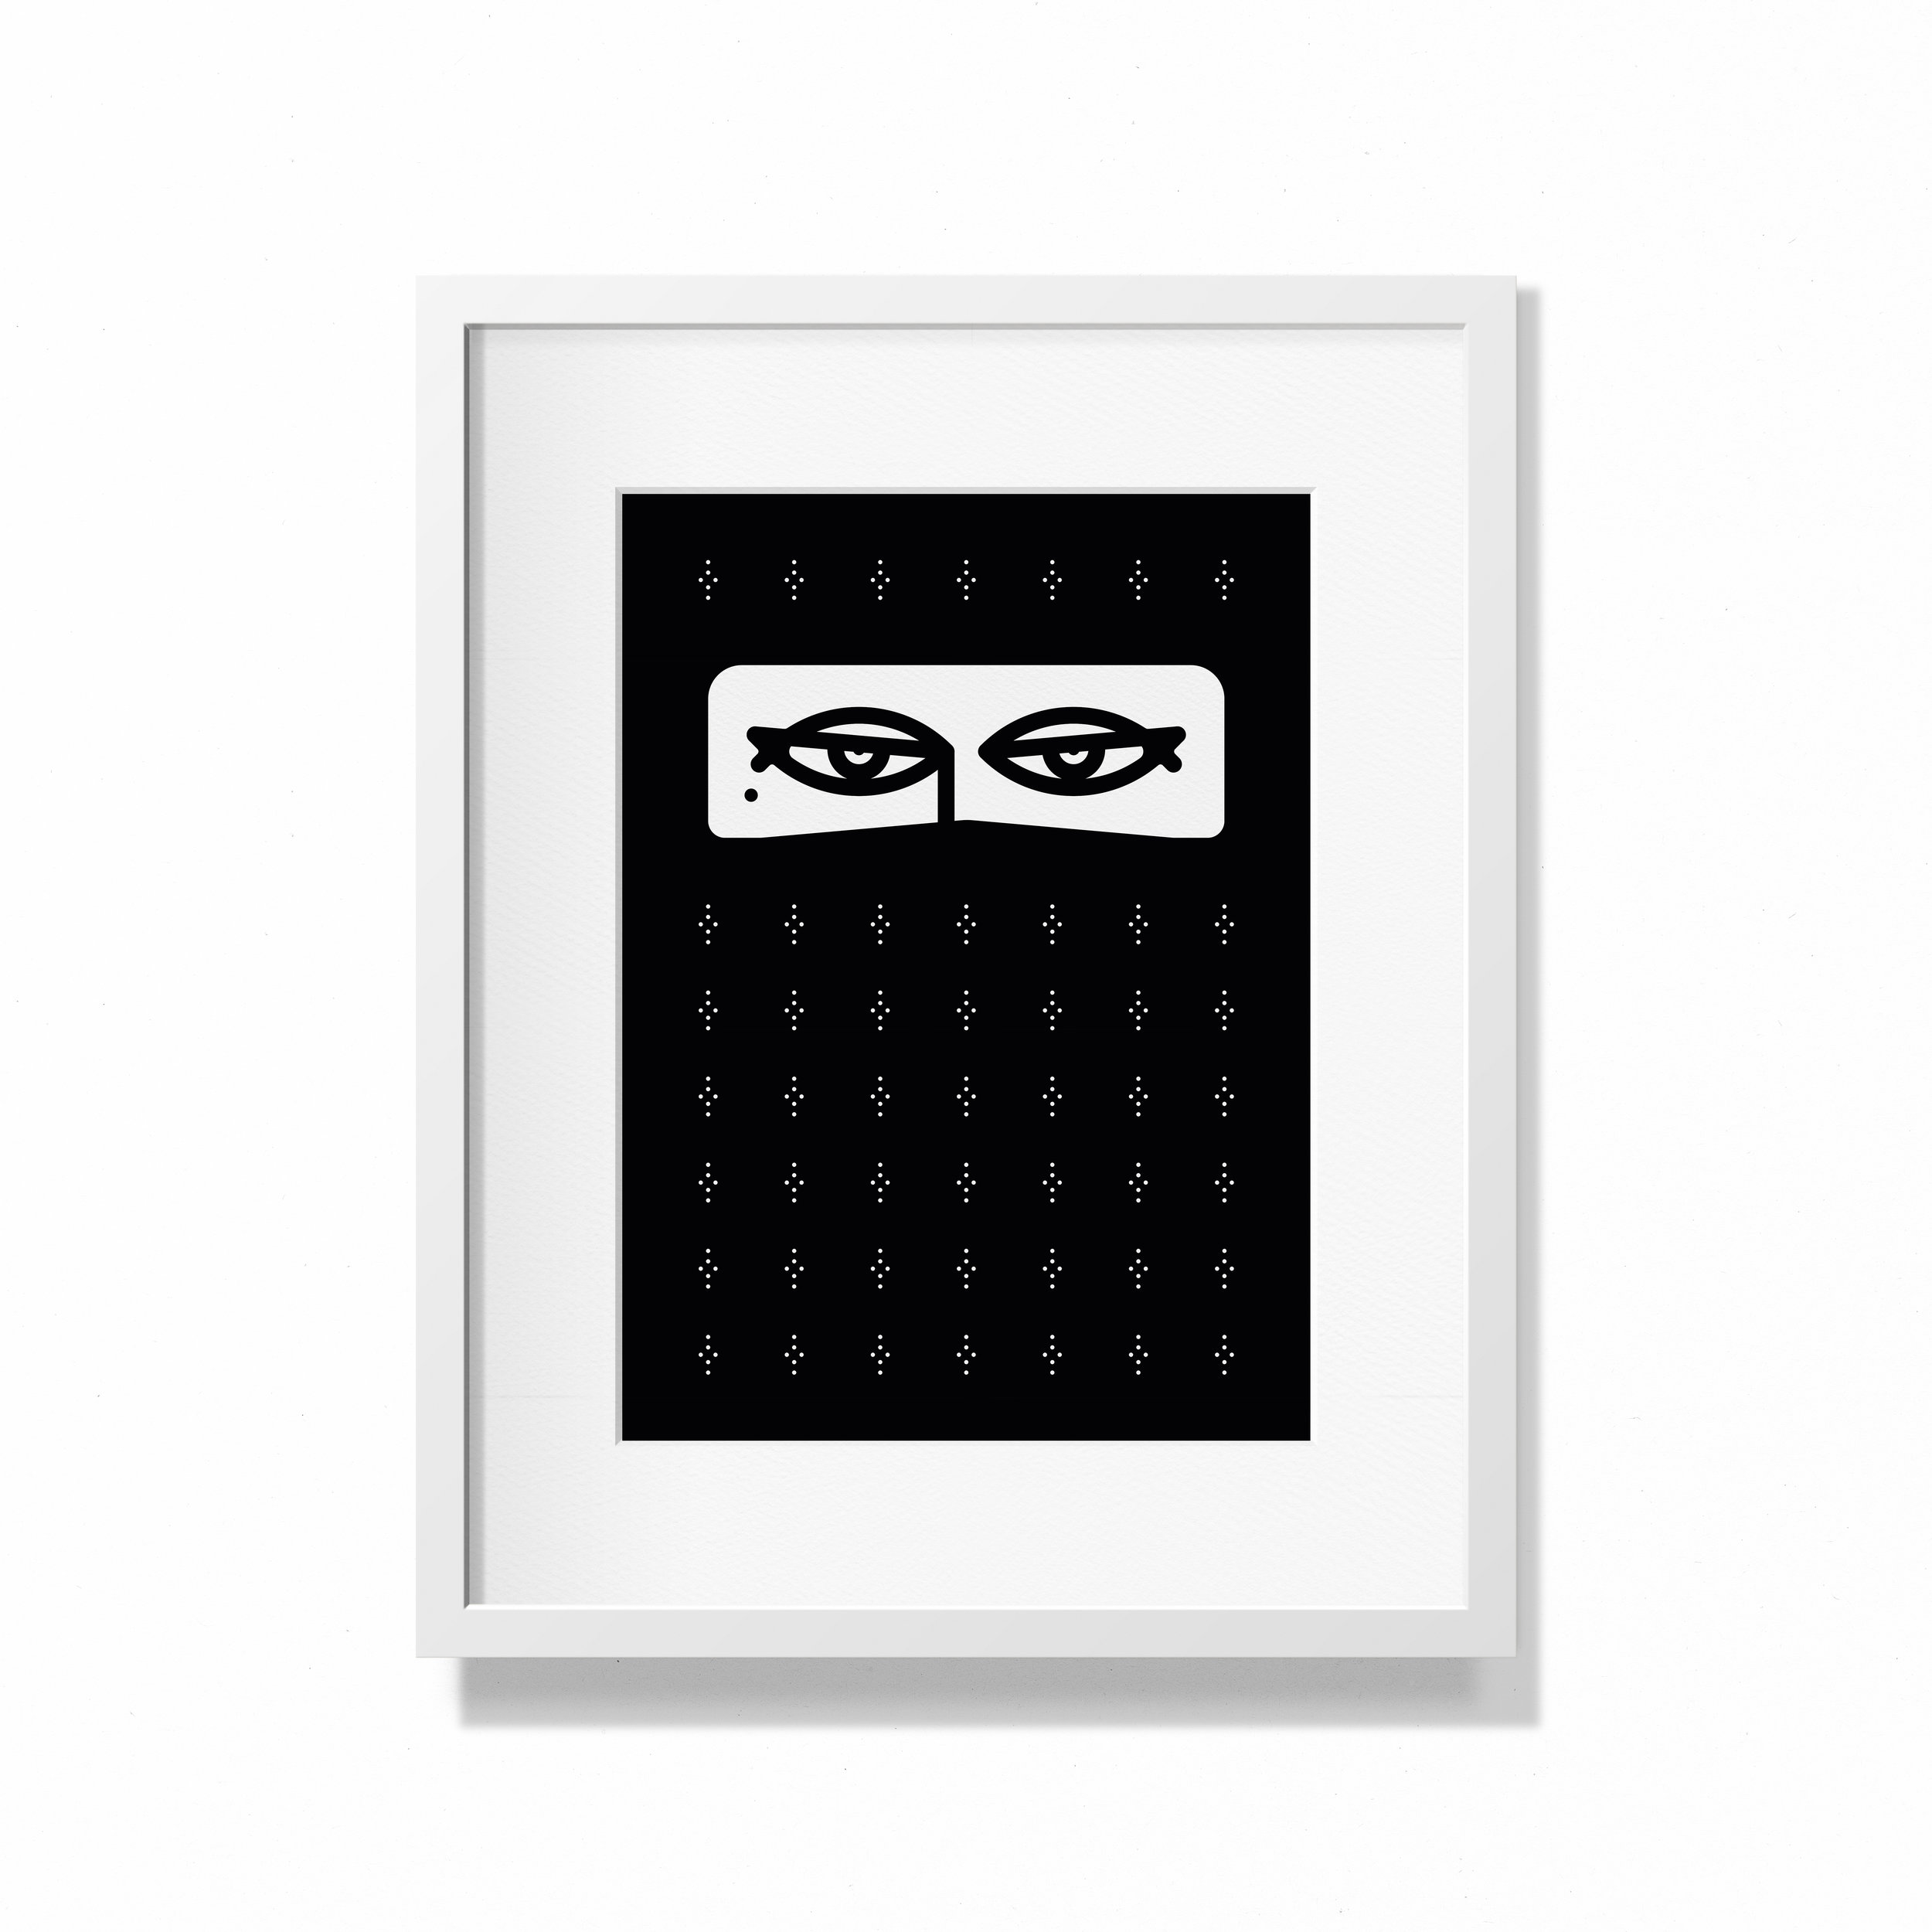 $250 WOMEN IN NIQAB | 5 POSTERS